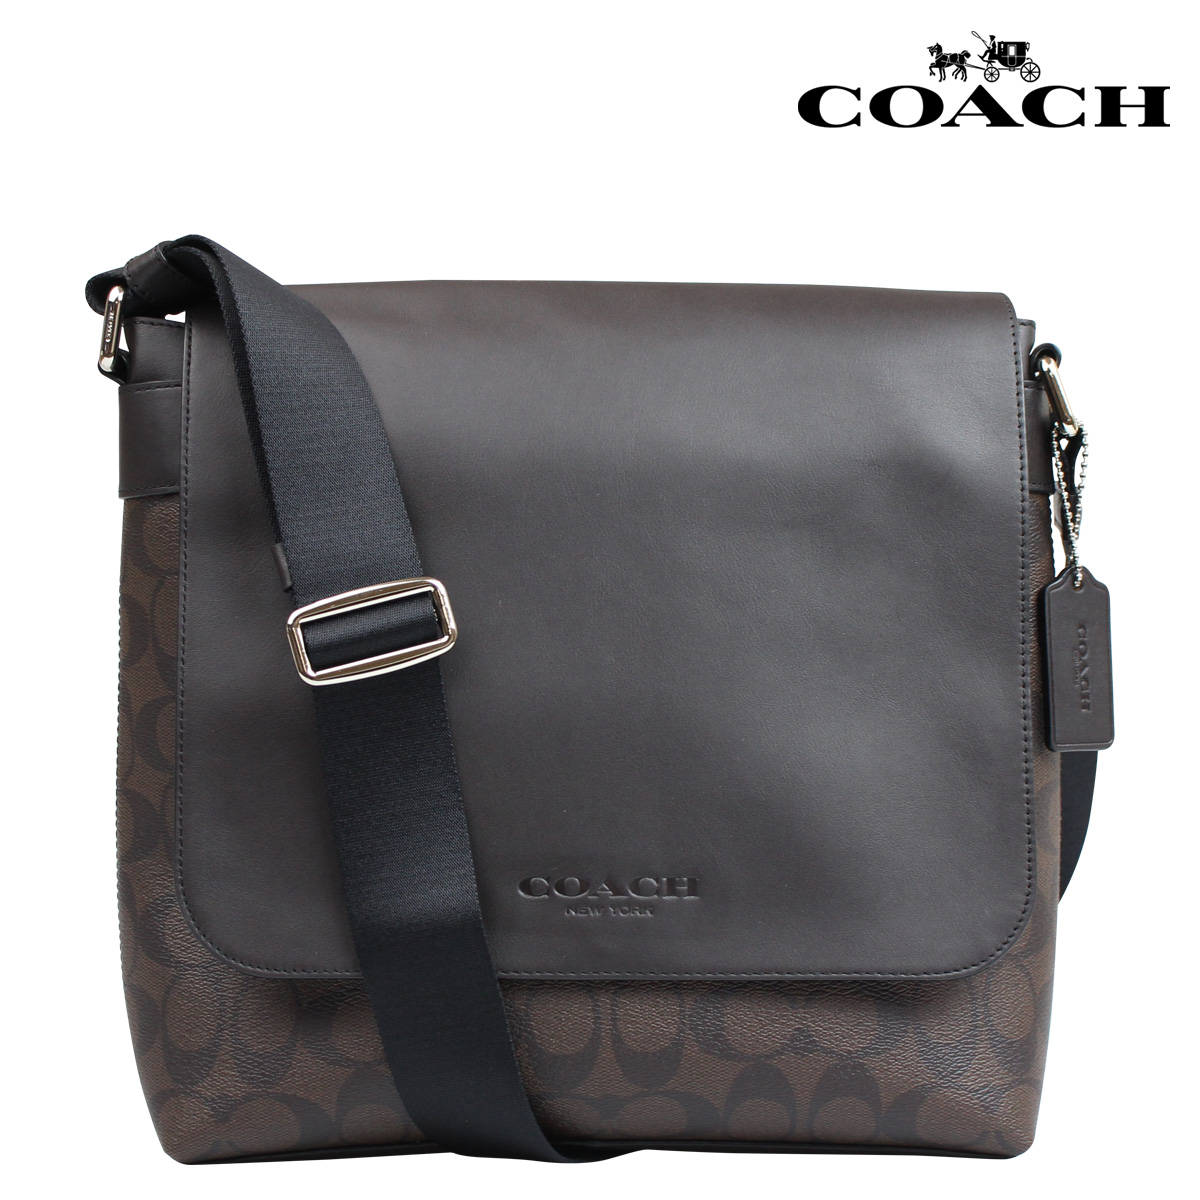 ... Coach COACH bag Messenger bag shoulder bags mens F72109 mahogany x  Brown signature Sullivan small Messenger ... 74479d1bc3cac